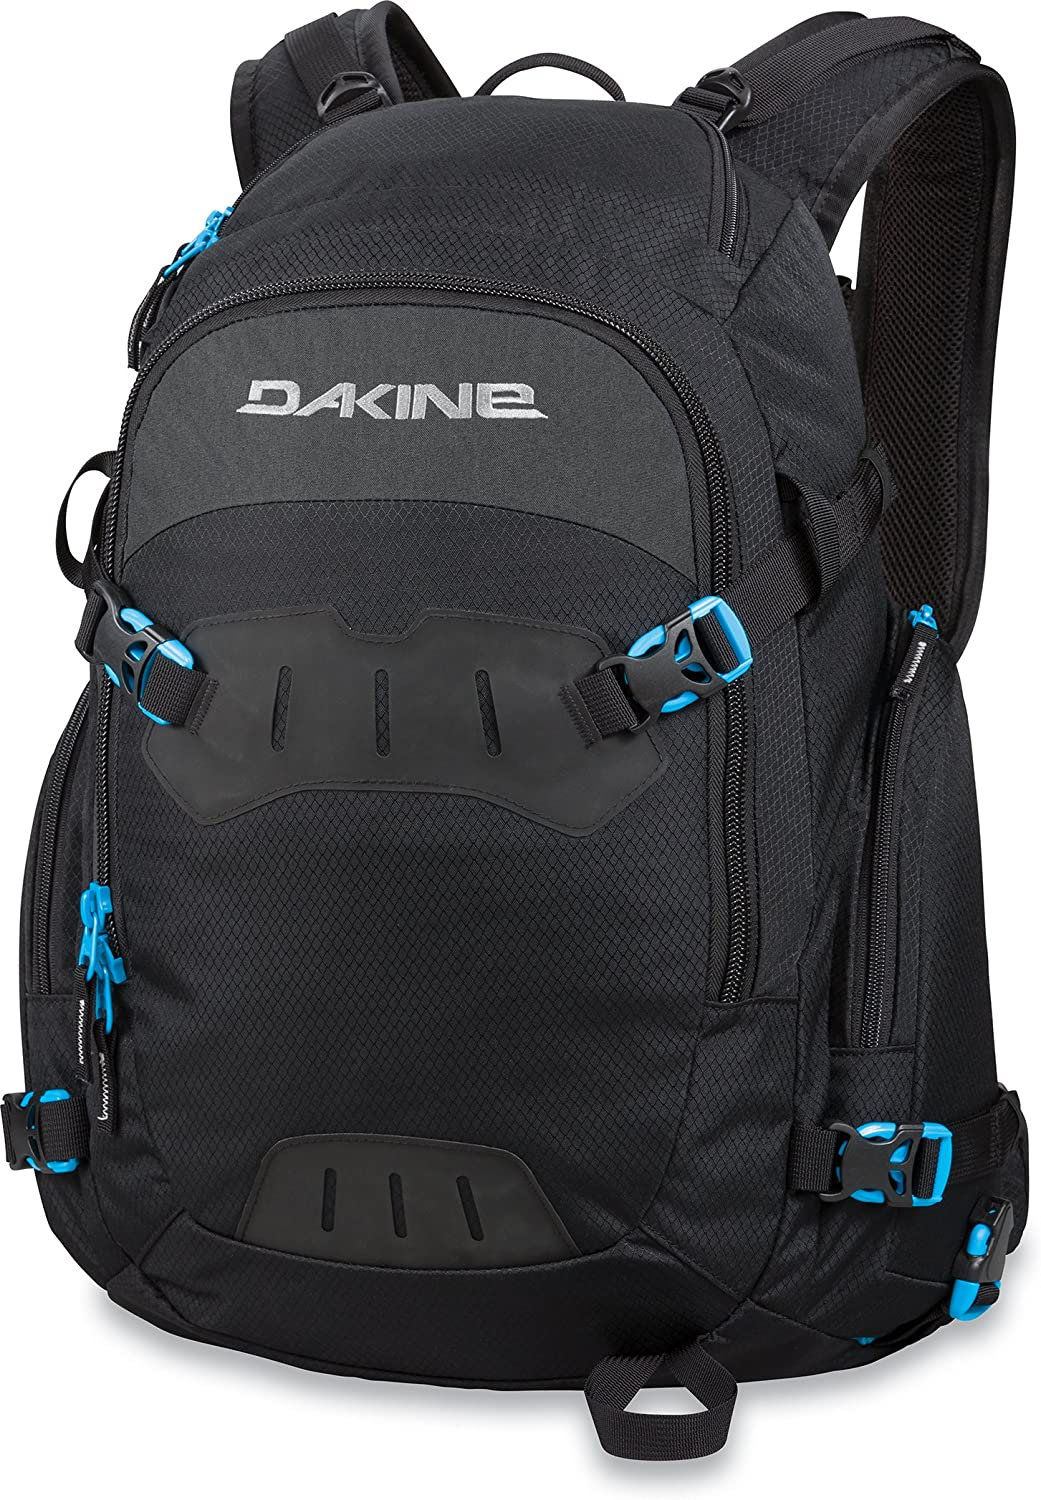 33 L Dakine Sequence Photo Camera Backpack Tabor